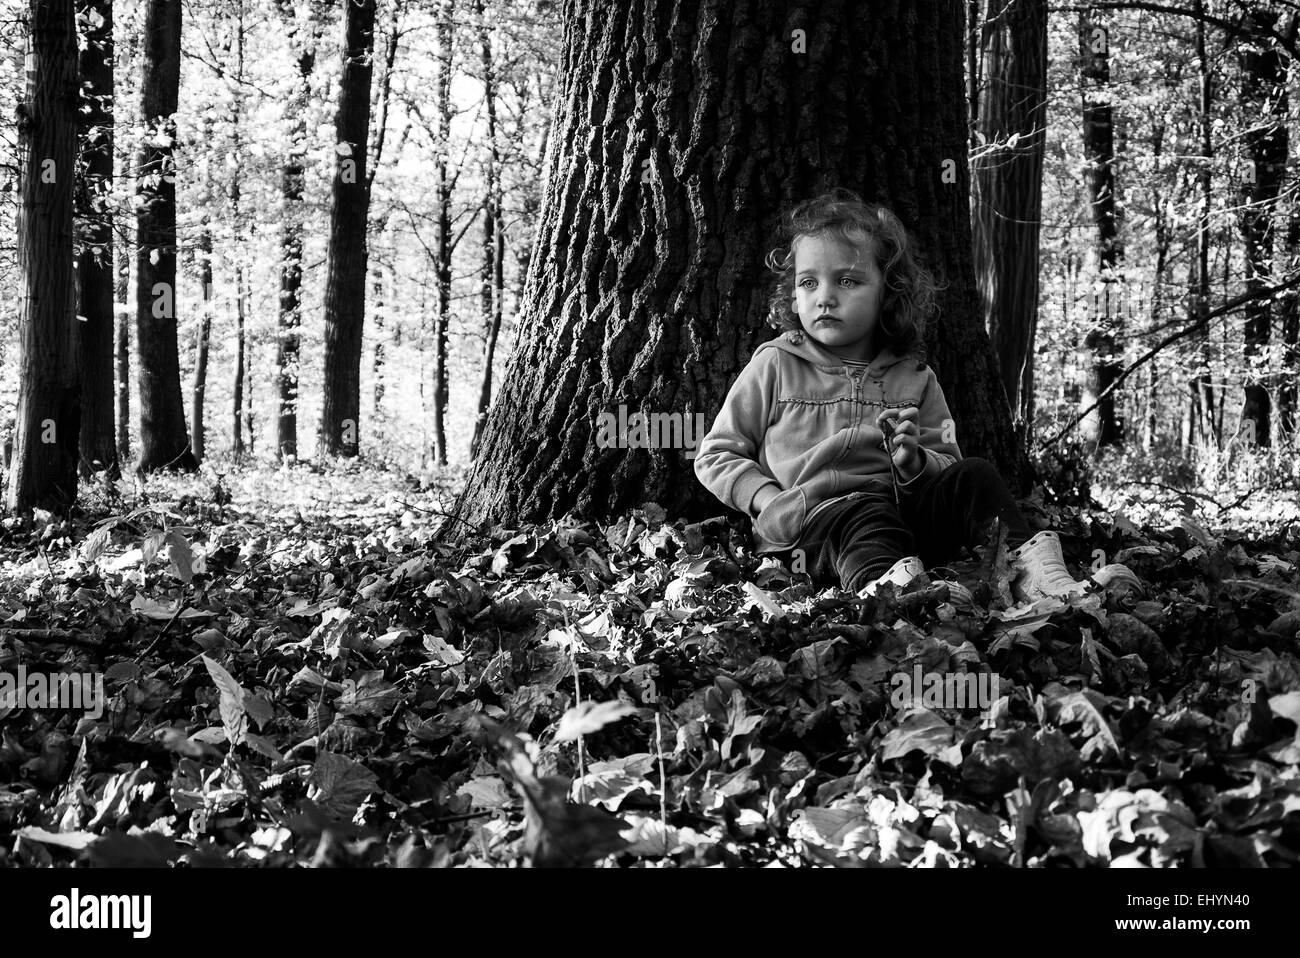 Girl sitting in the woods leaning against a tree trunk - Stock Image